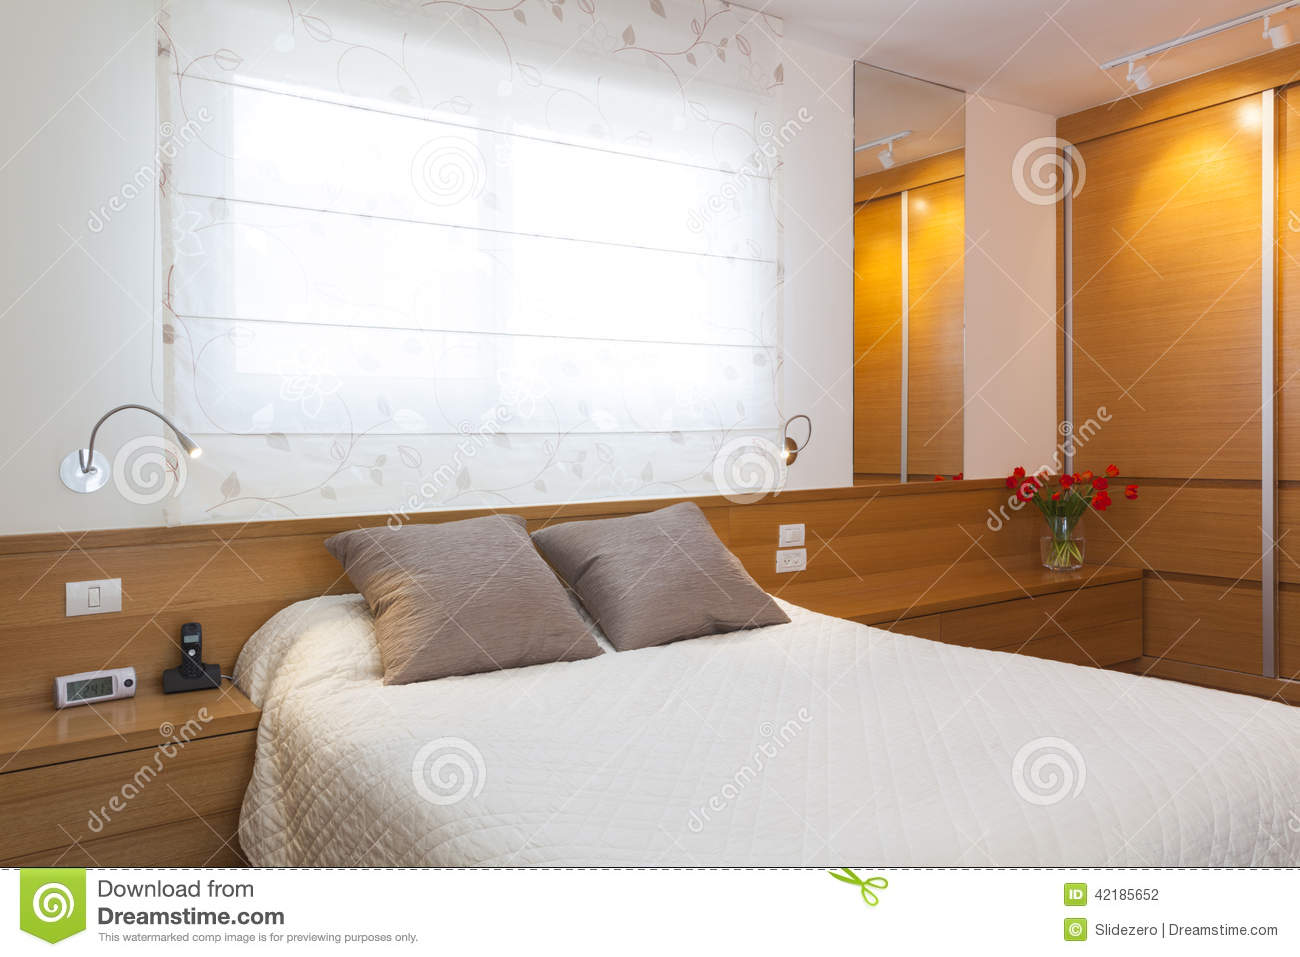 Luxury bright bedroom stock photo image 42185652 for Bright bedroom wallpaper